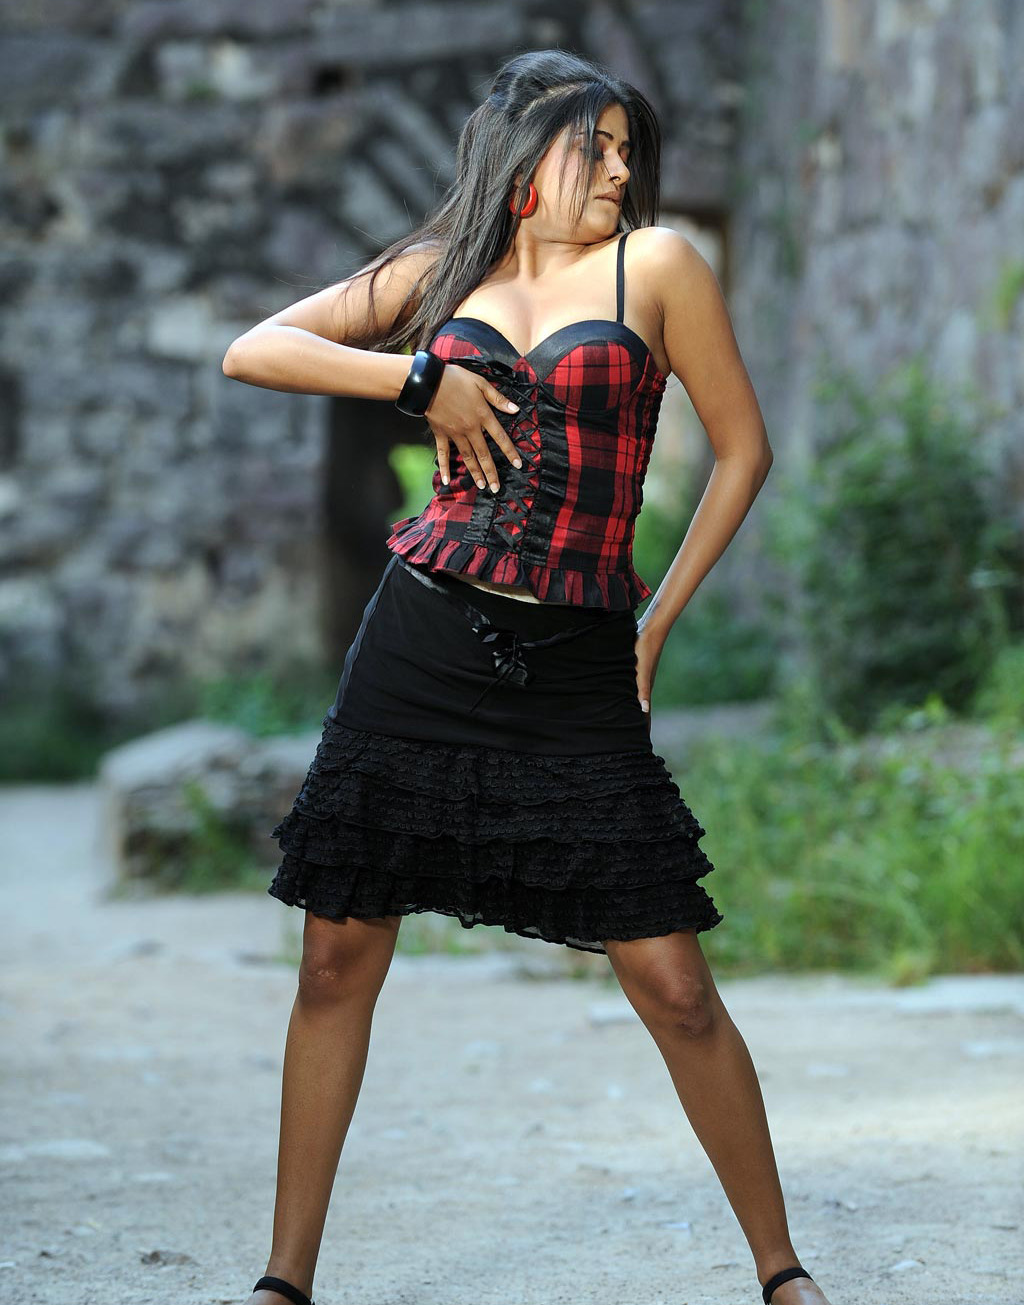 Priyamani Sexy Images | Priyamani Hot Photos | Priyamani Latest Update